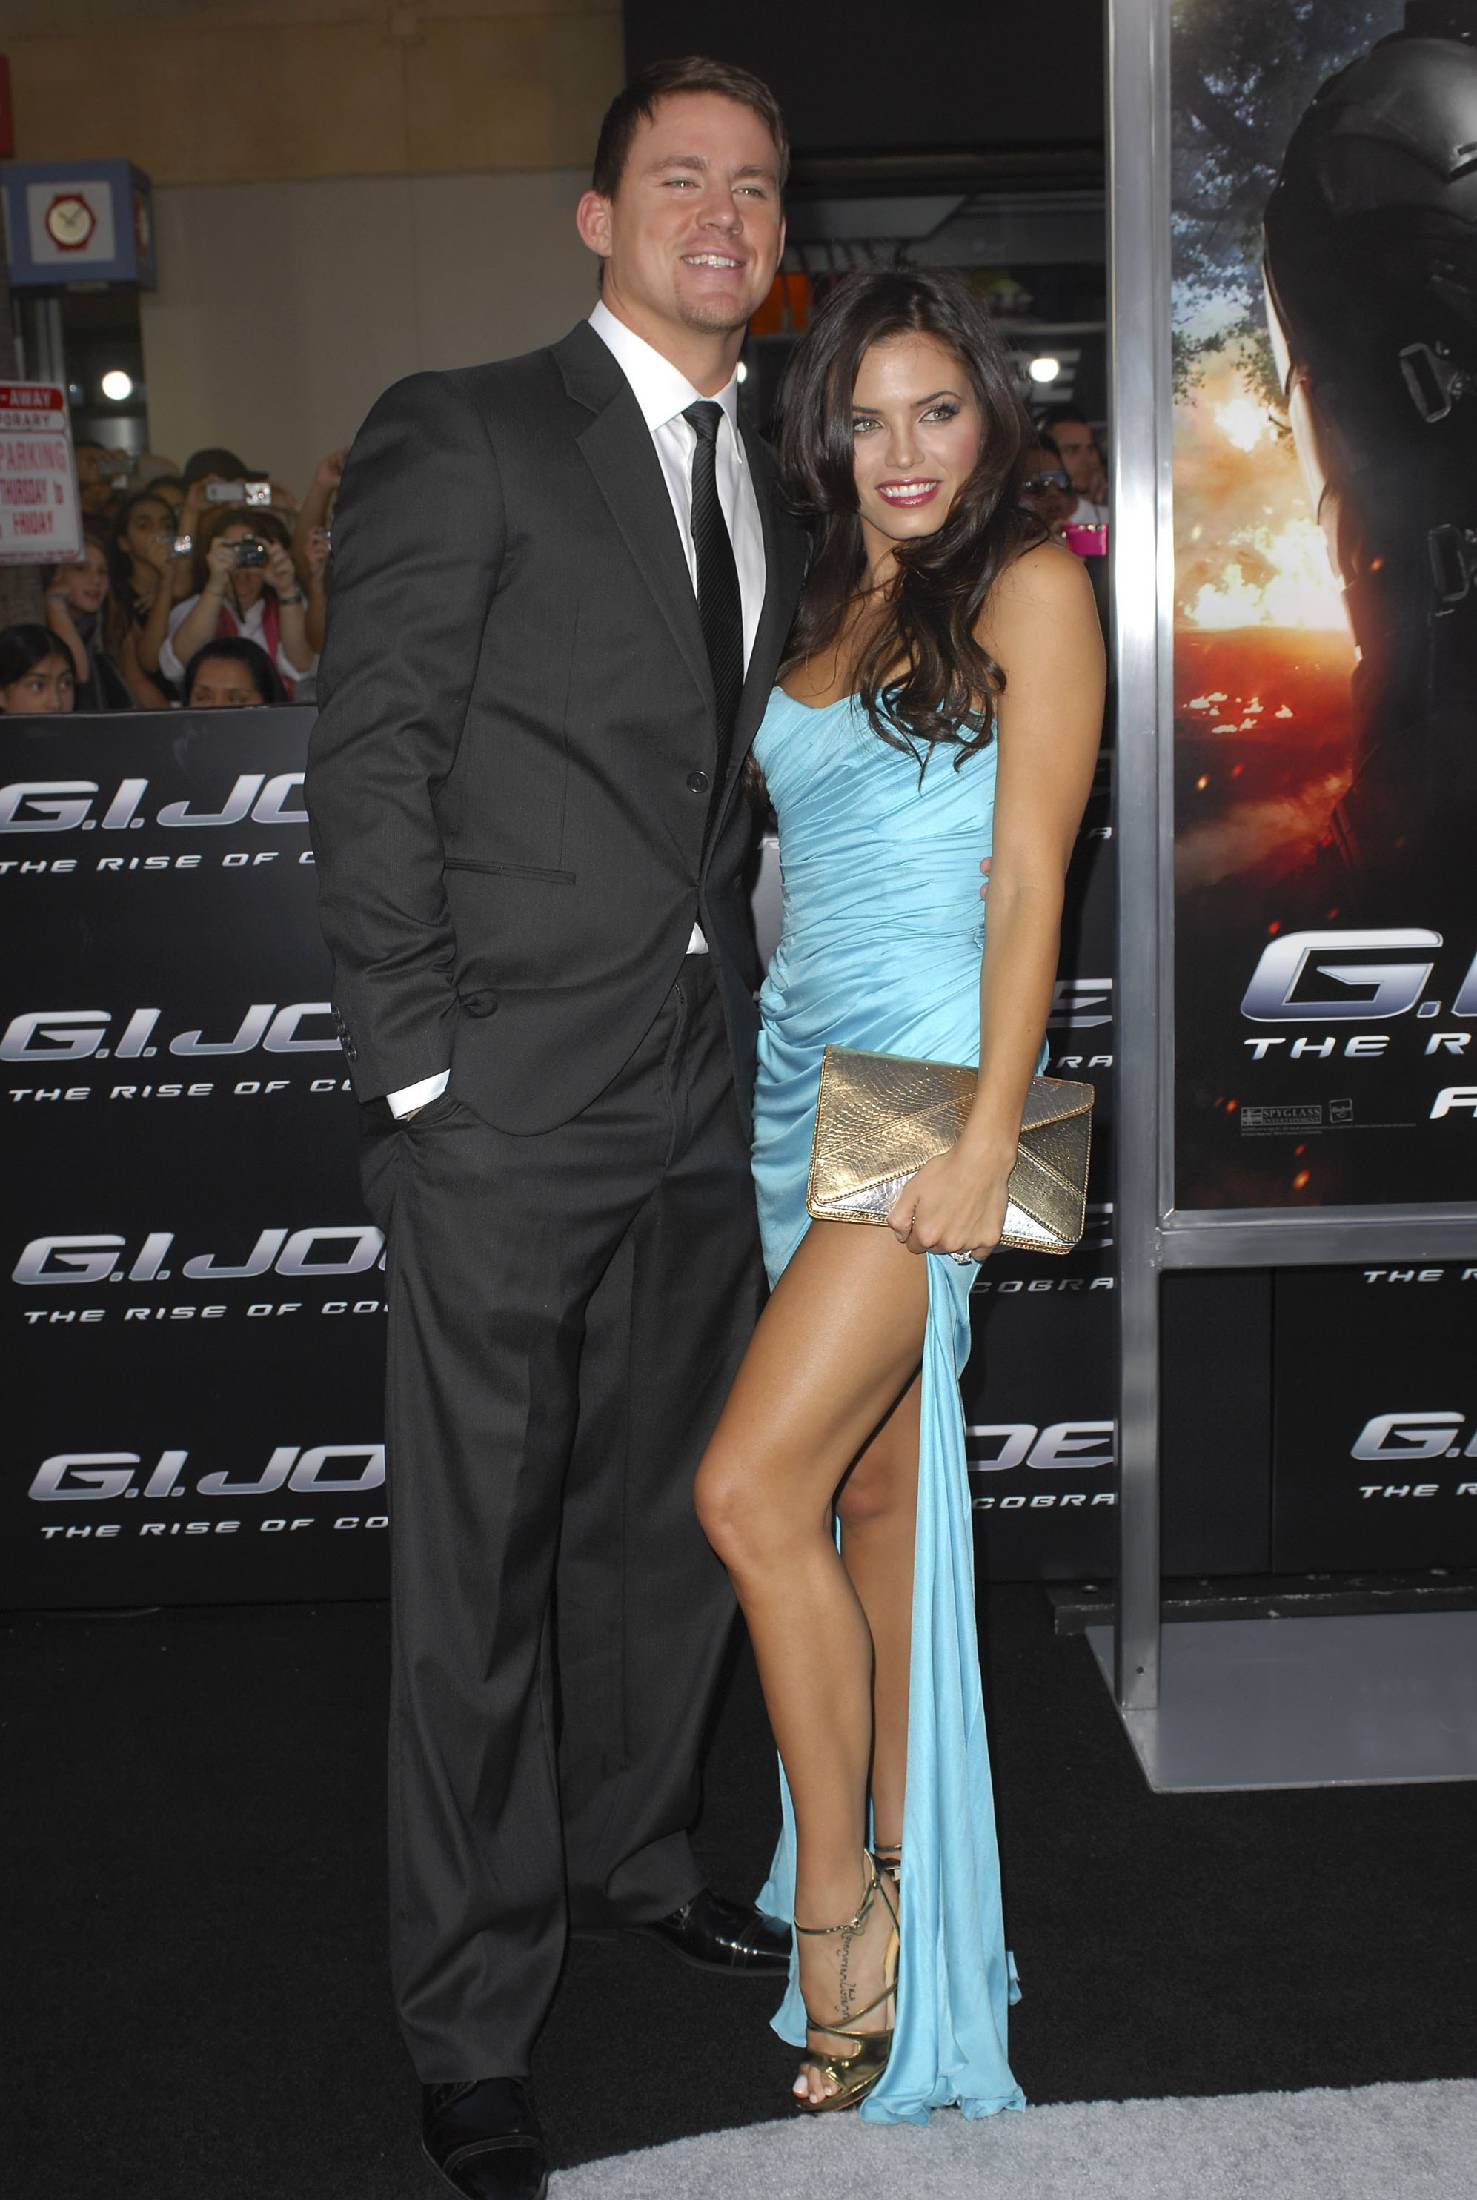 30701_Jenna_and_Chaning_Special_screening_of_G.I._JOE_in_LA4_122_1089lo.jpg